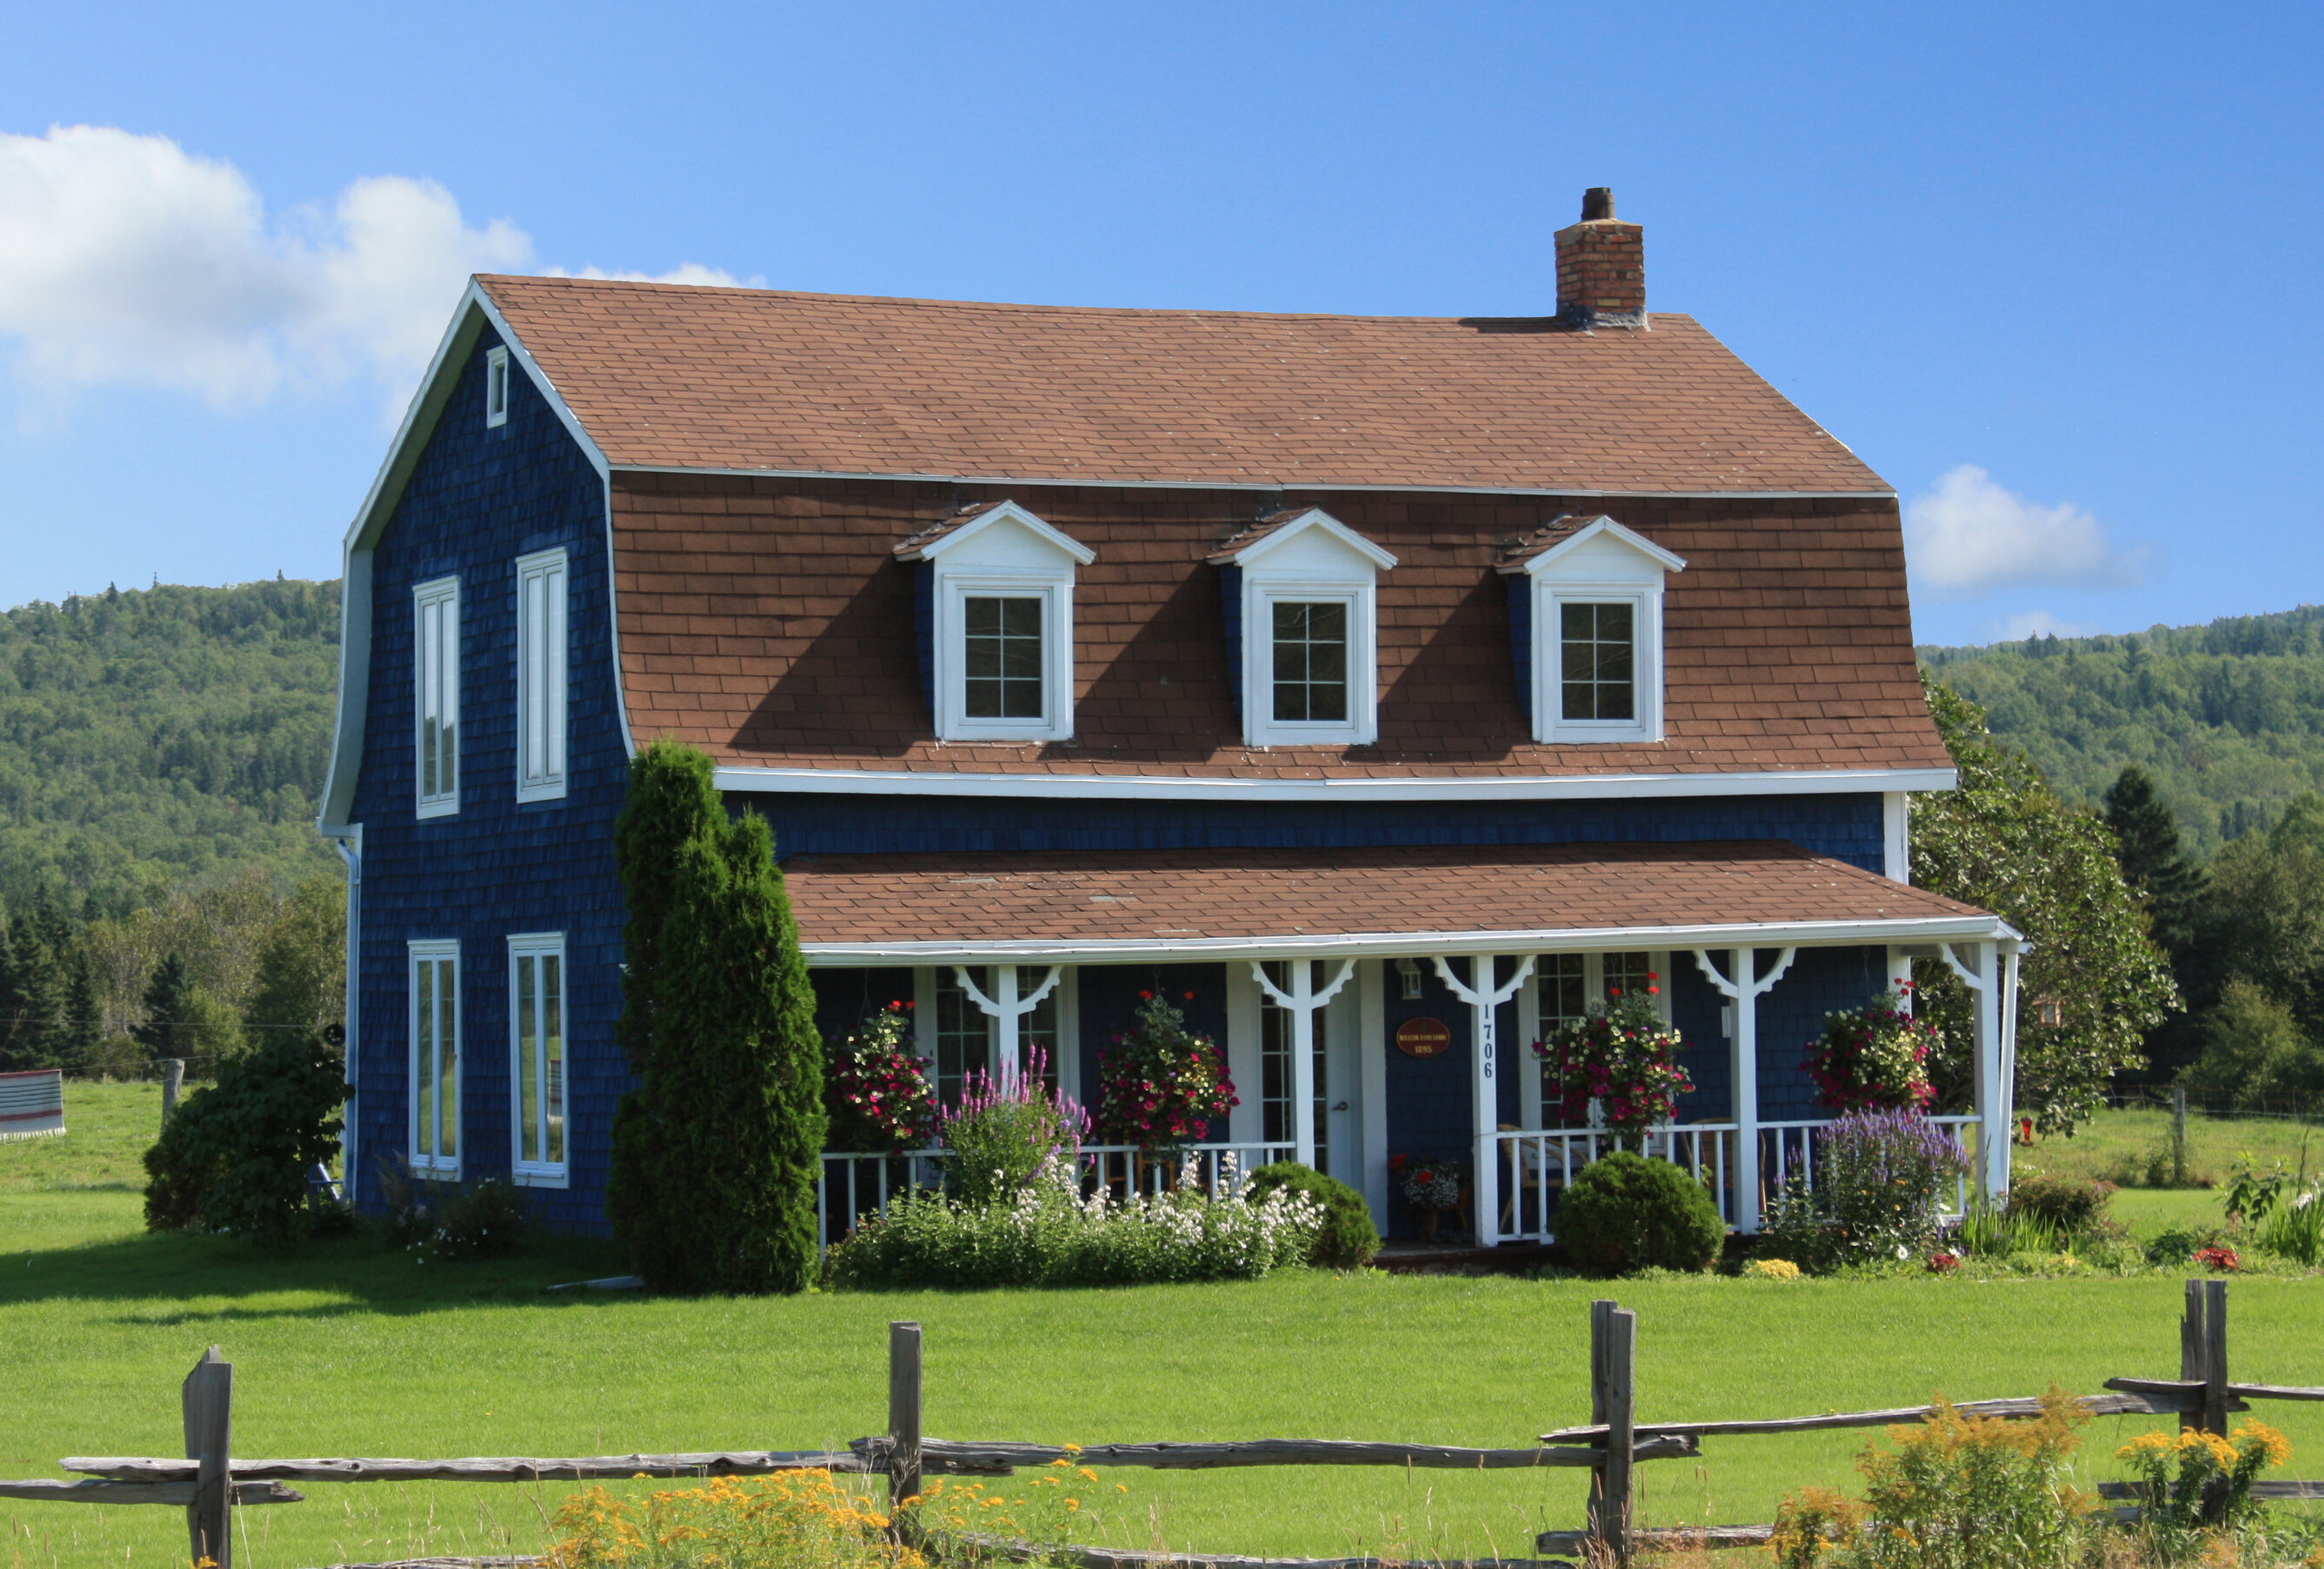 A navy blue farmhouse on a large, secluded piece of property.